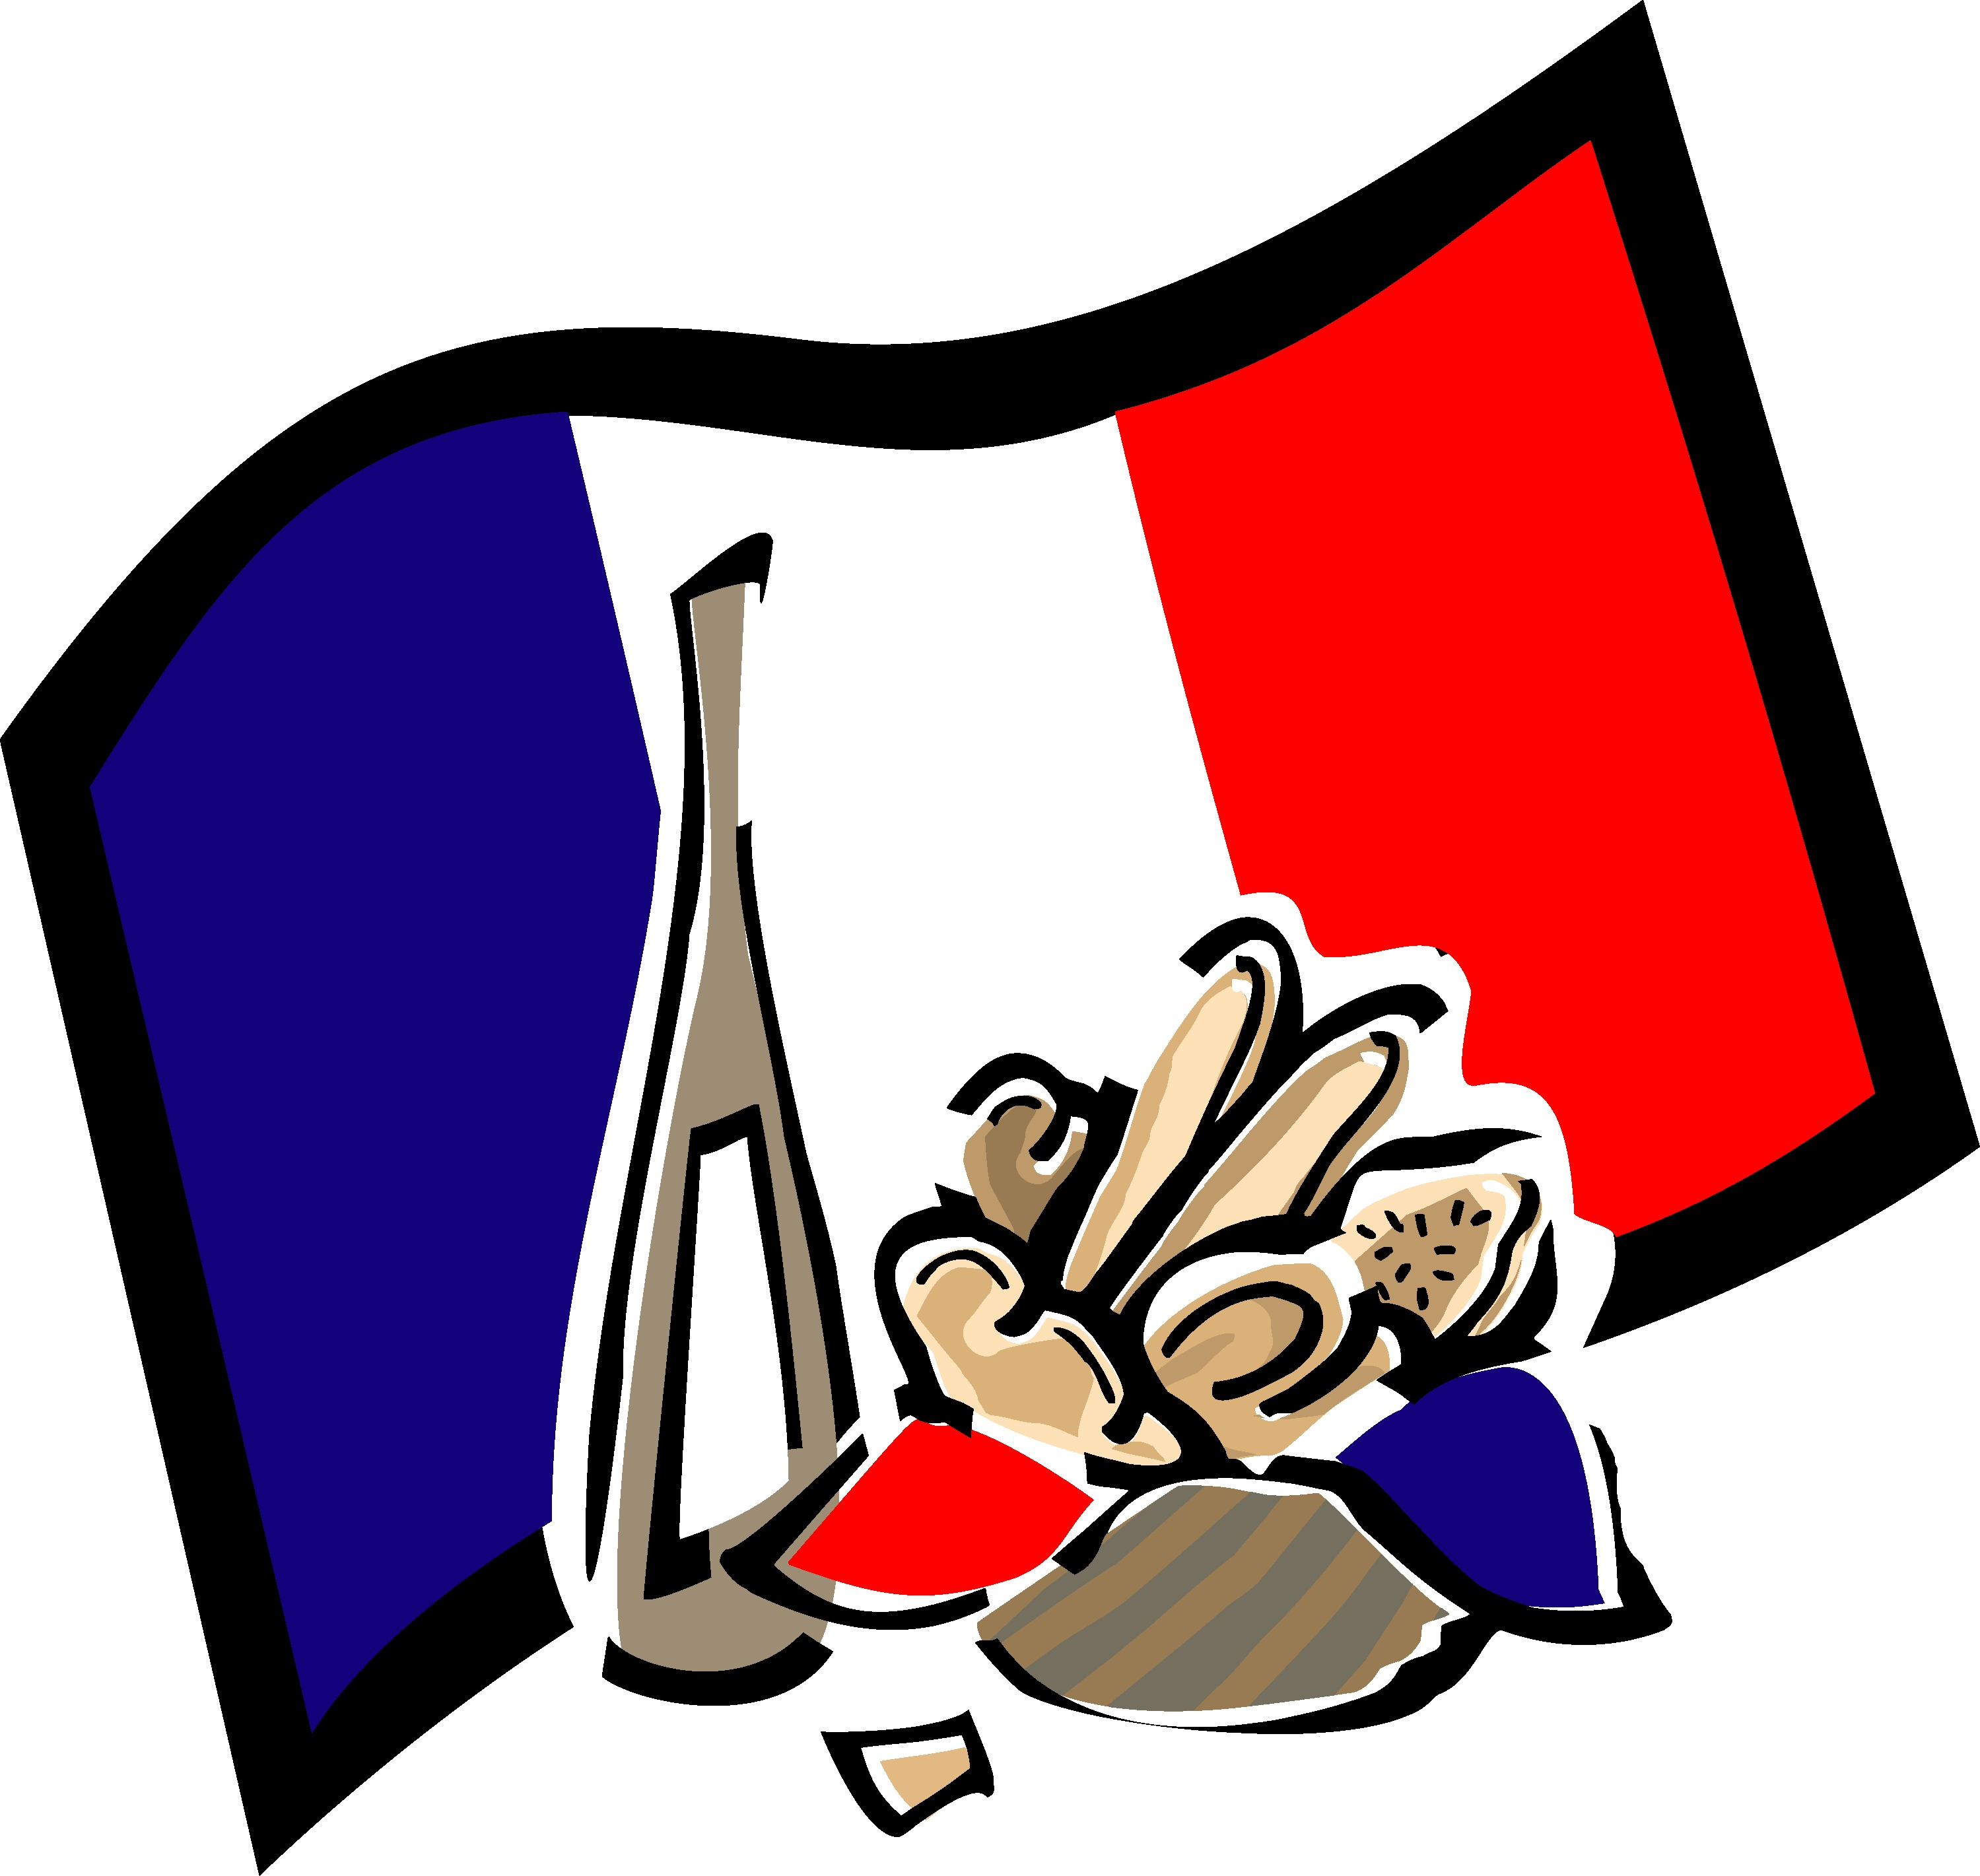 School cliparts download clip. Free french clipart images